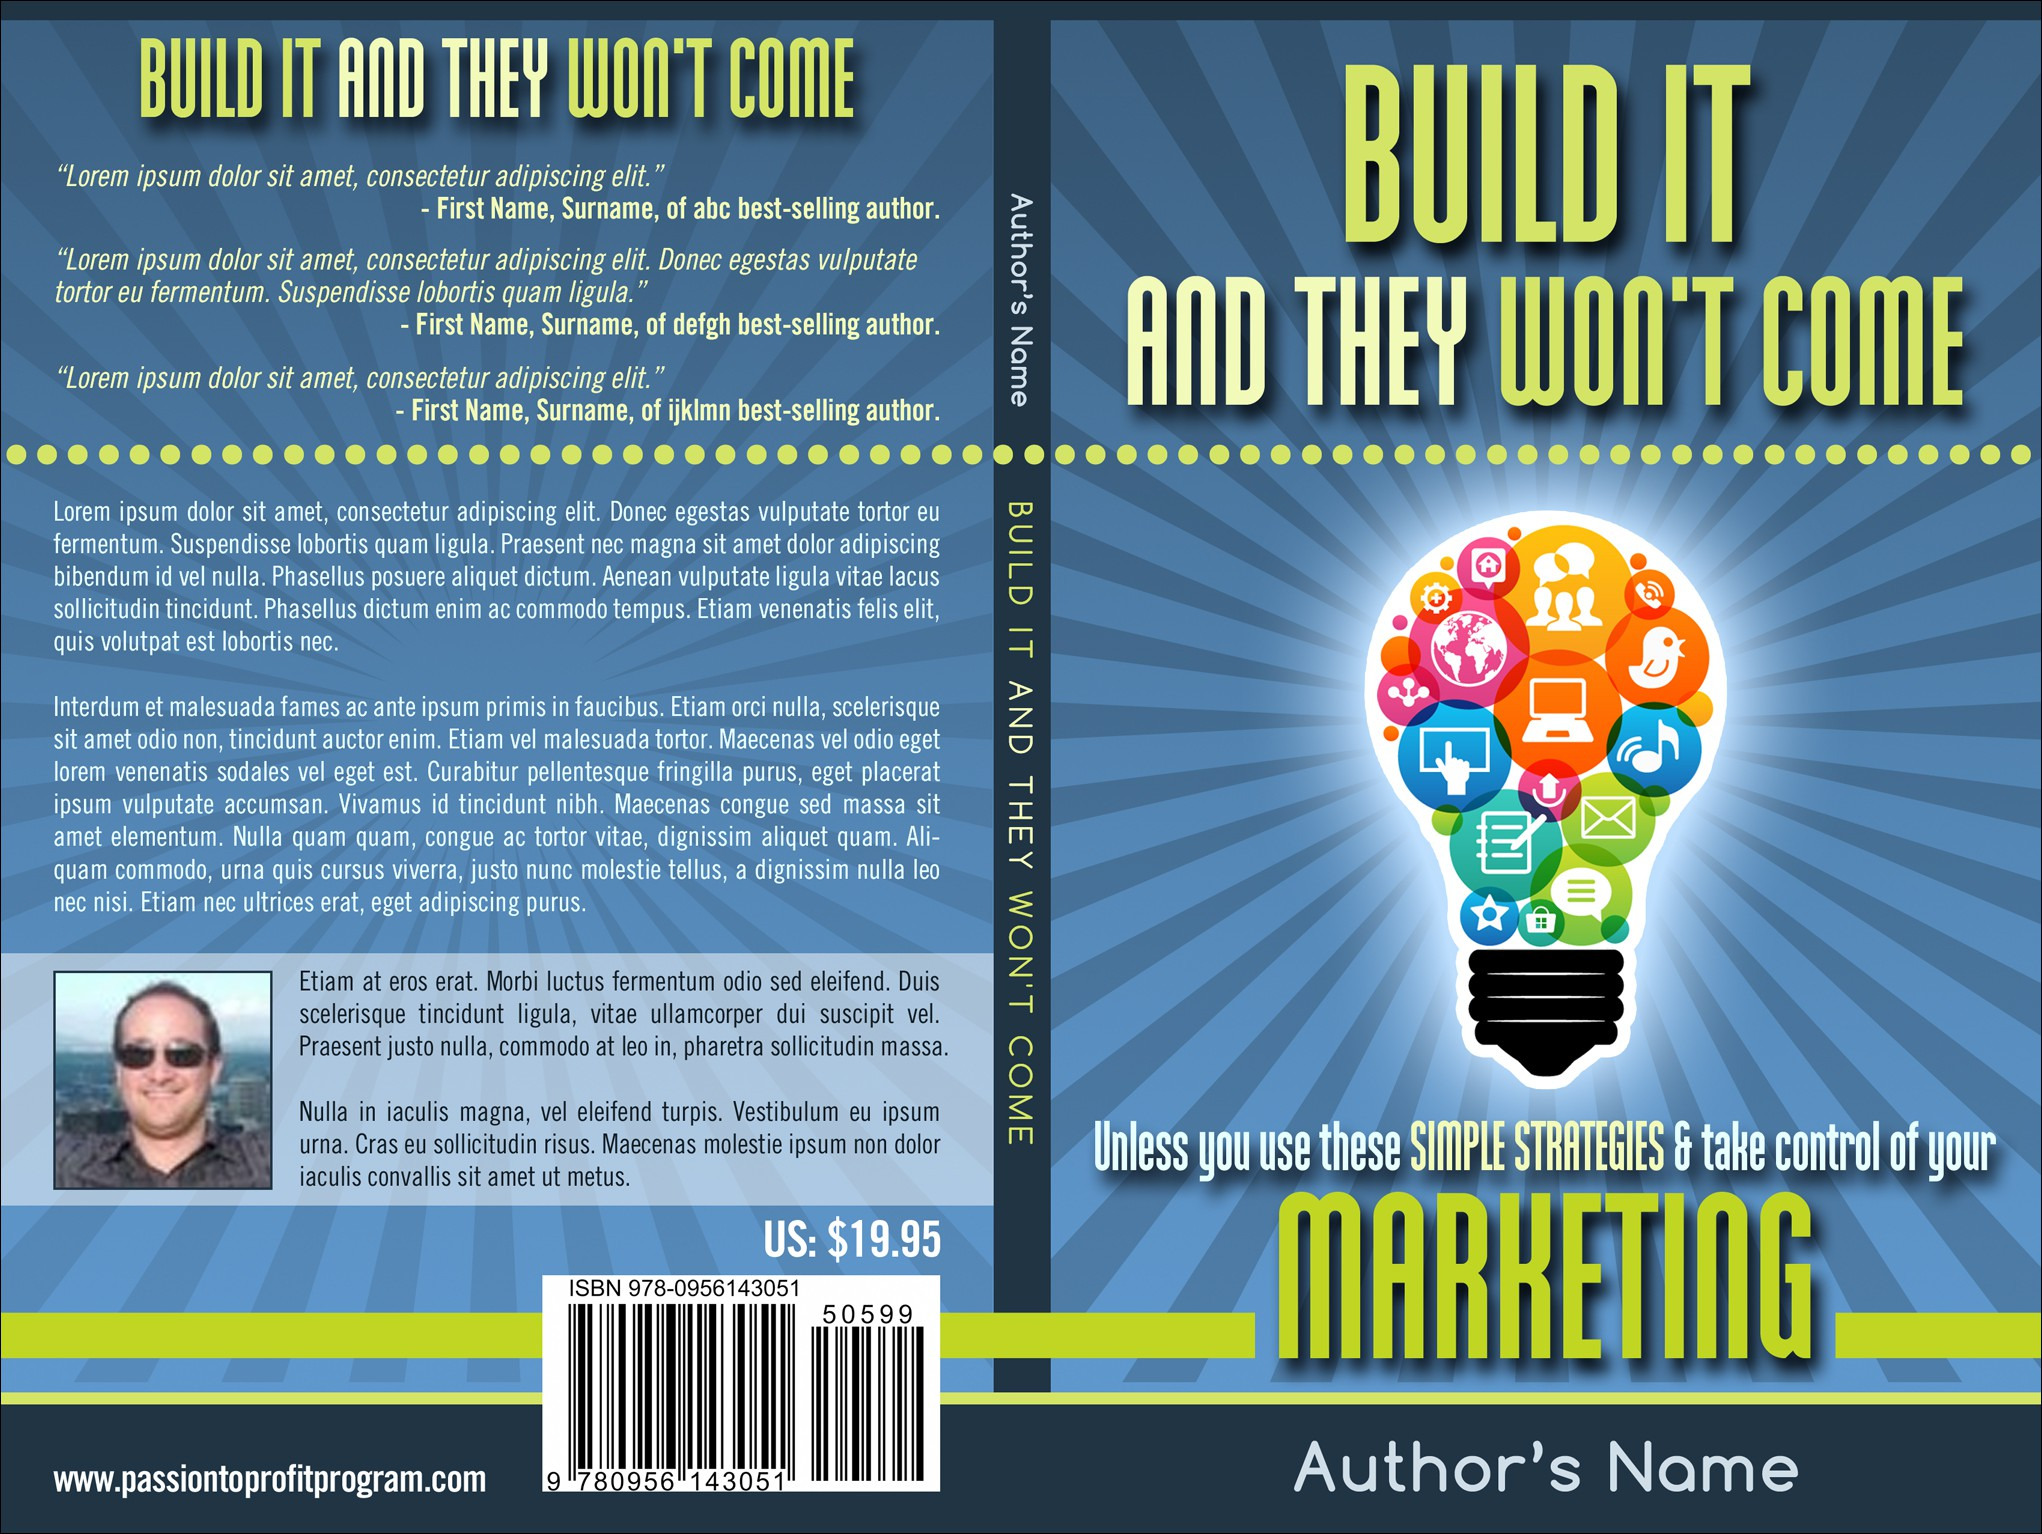 If you design it, they will purchase! Help me make this book a huge success!